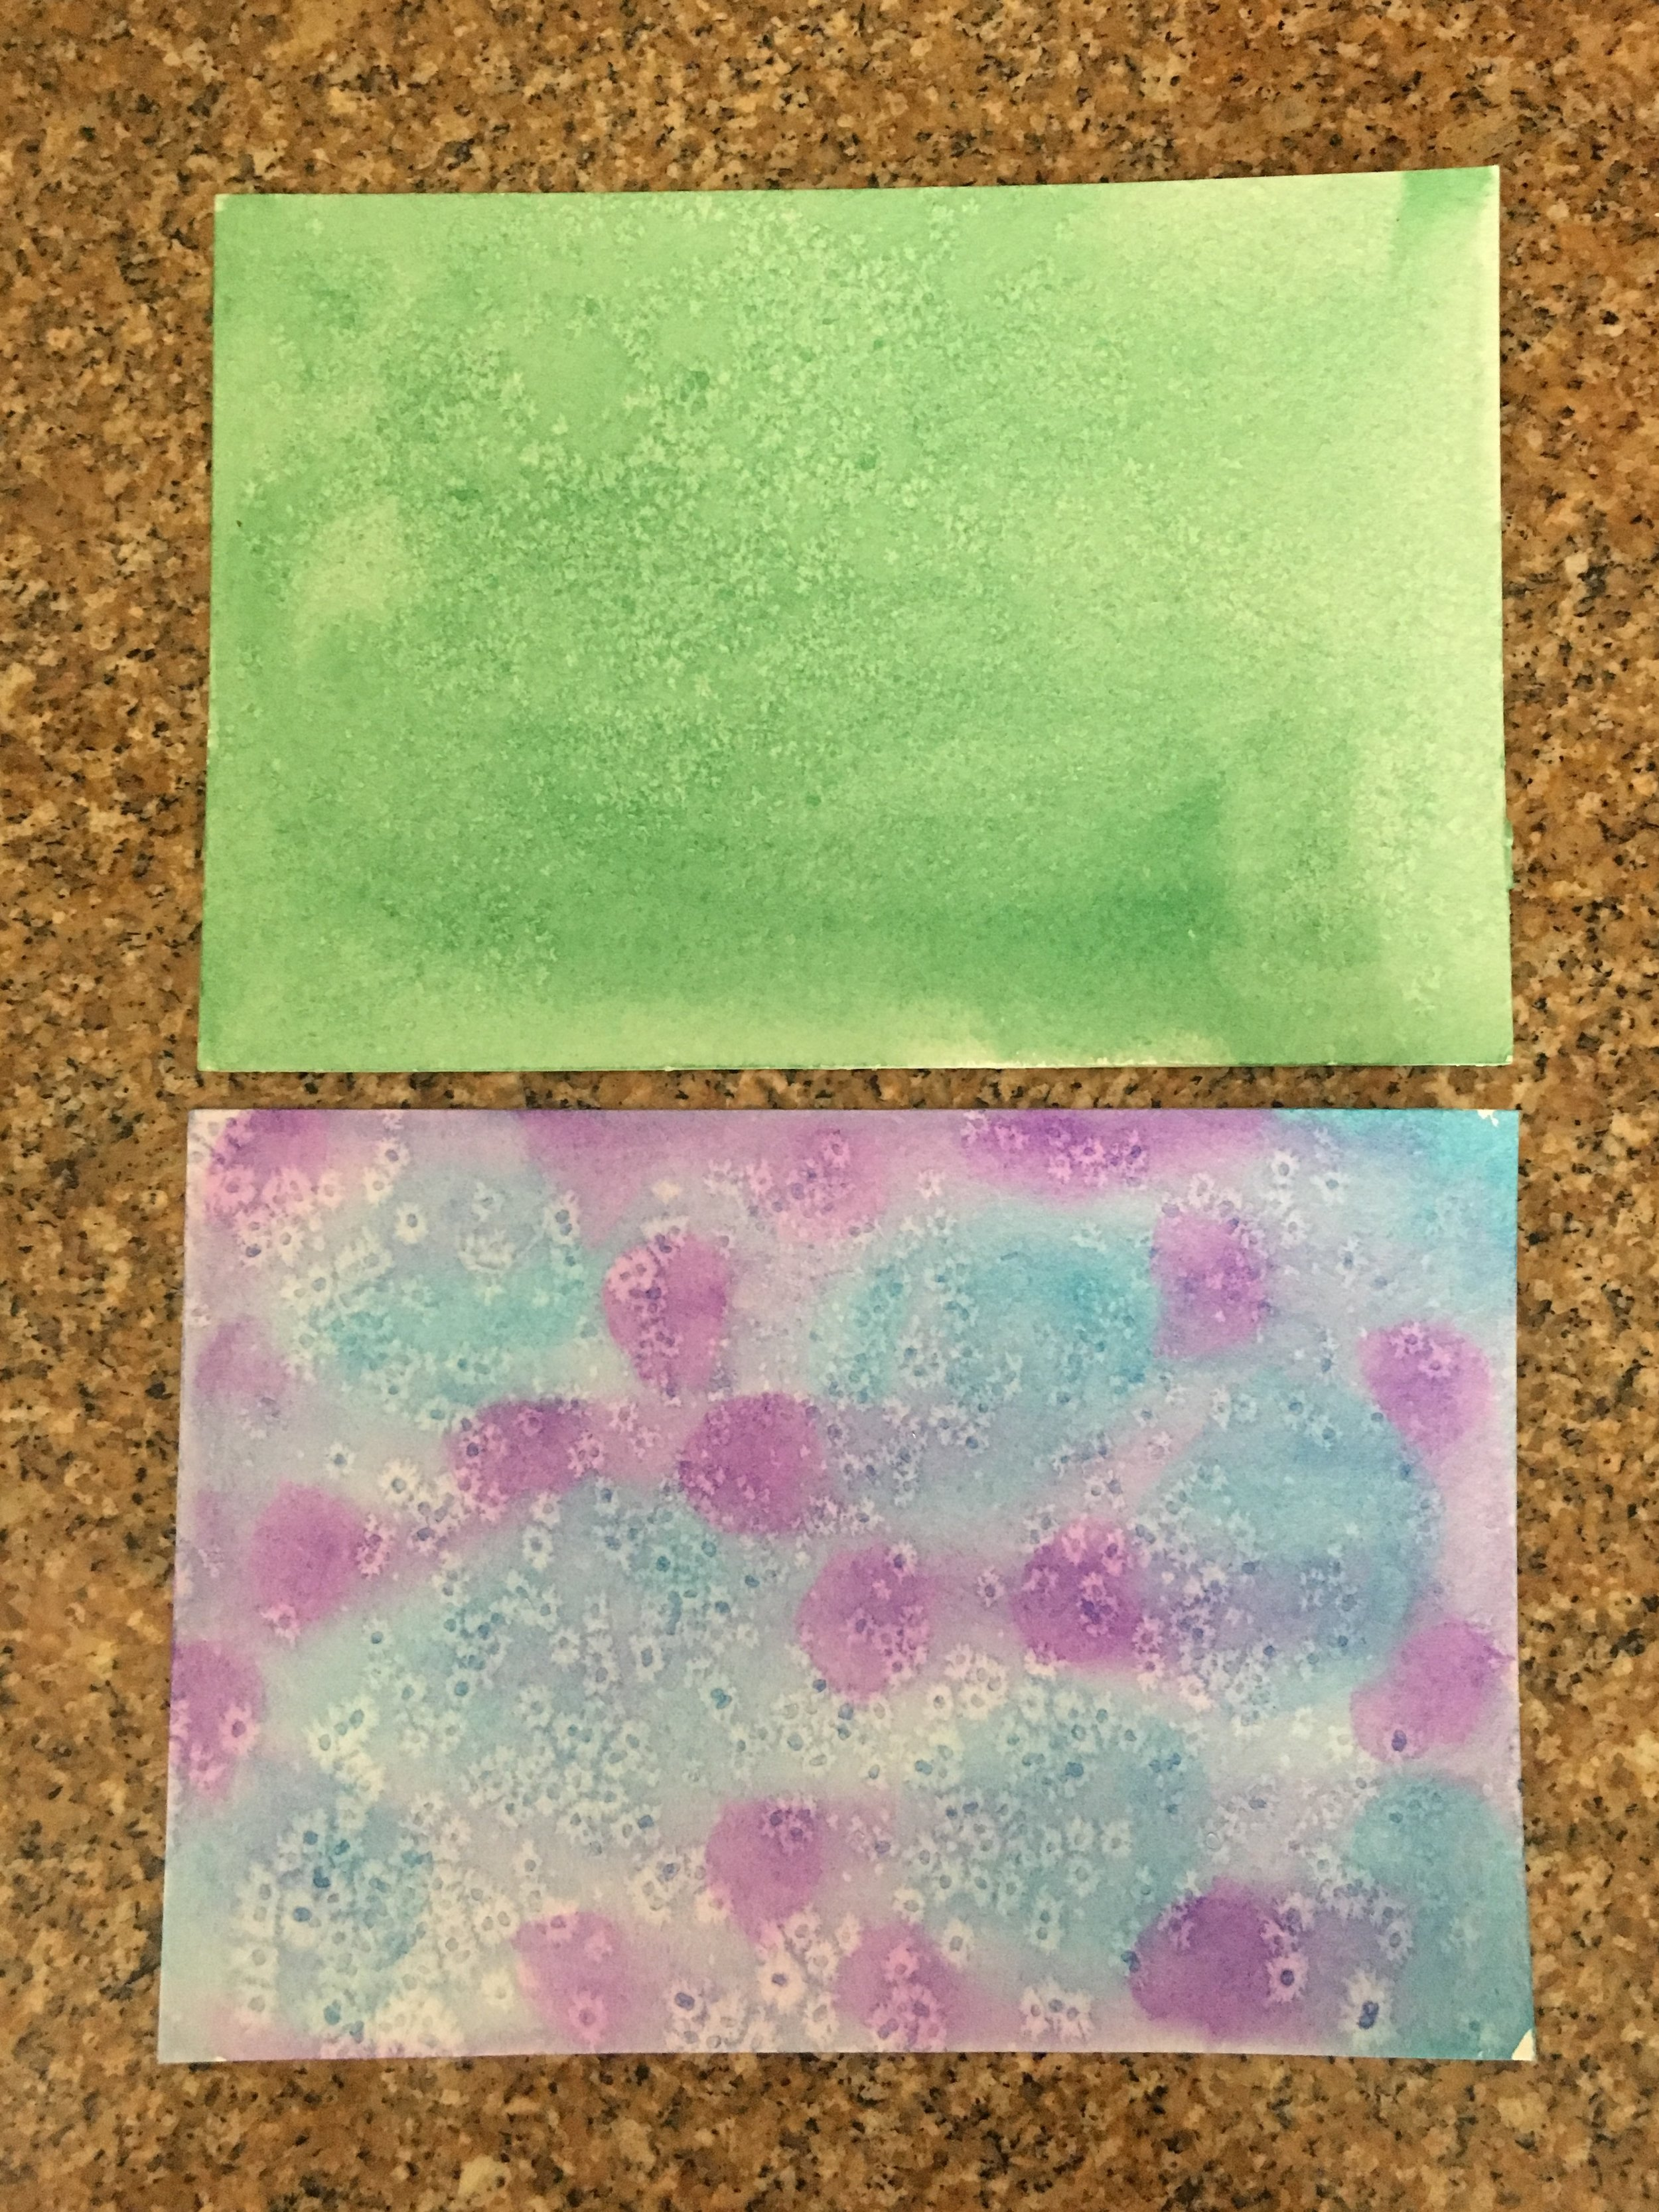 Creating Designs with a Watercolor Salt Technique